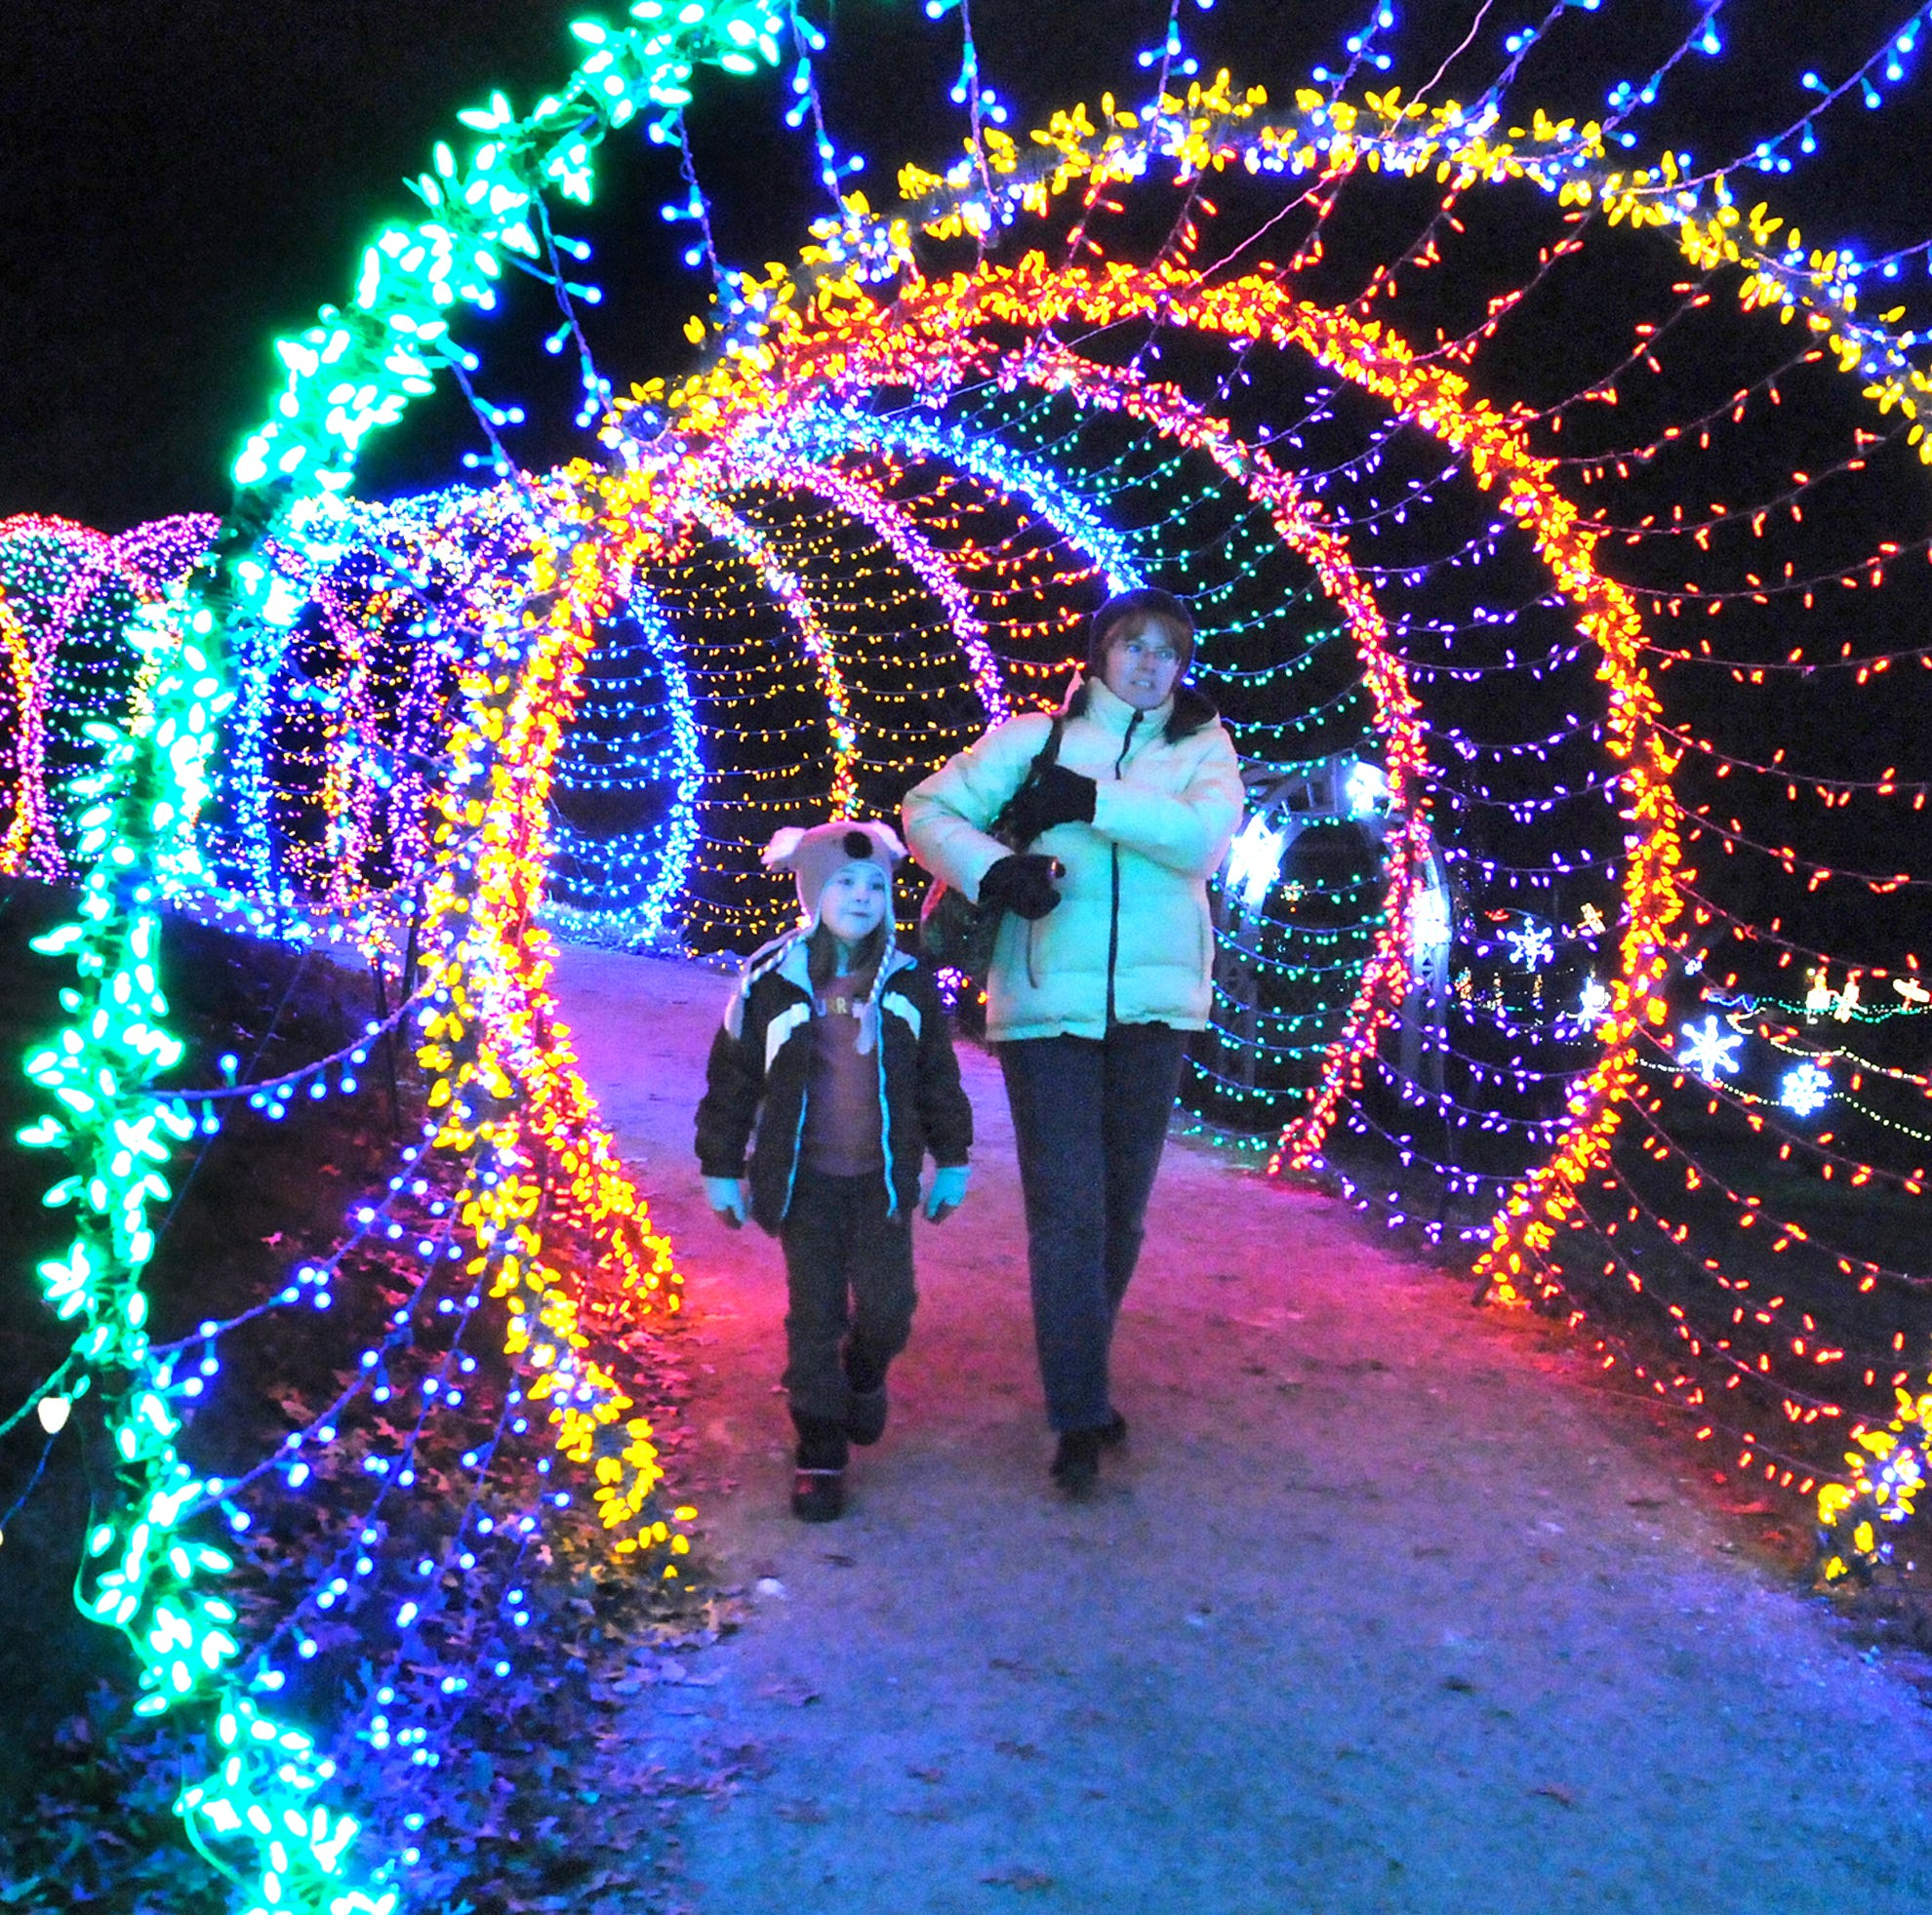 10 tips to make your visit to Garden of Lights merry and bright